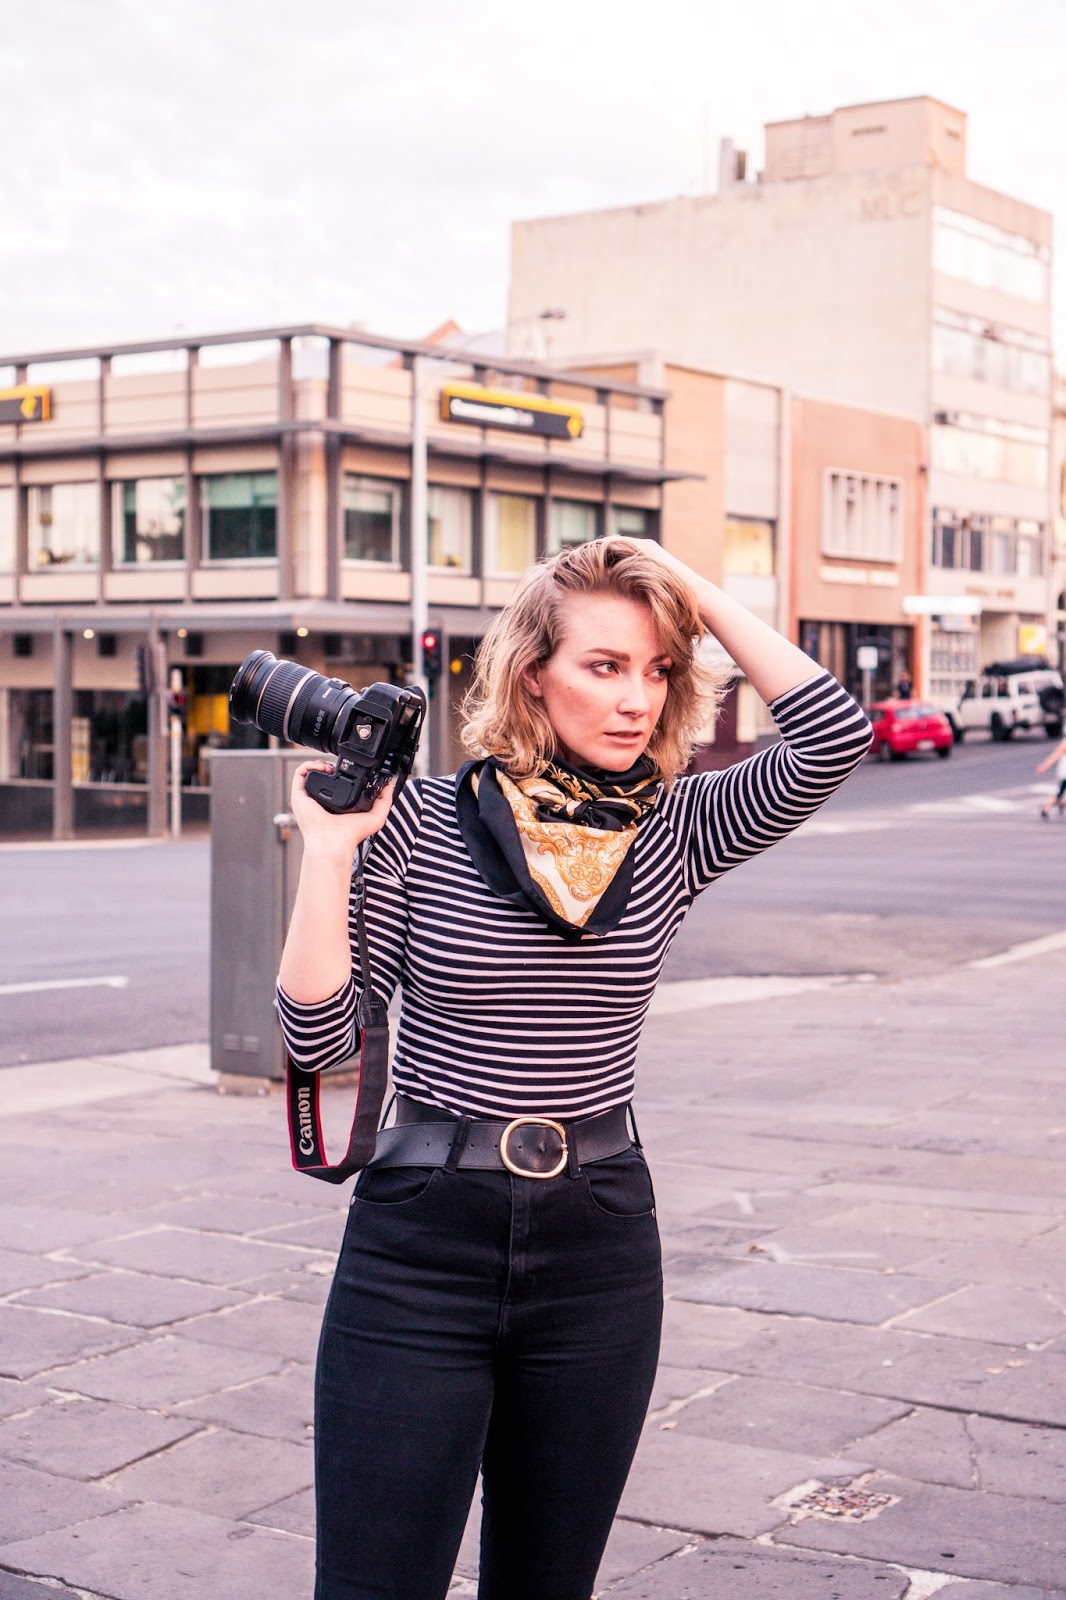 Liana of @findingfemme shoots wearing black skinny jeans and black and white striped top